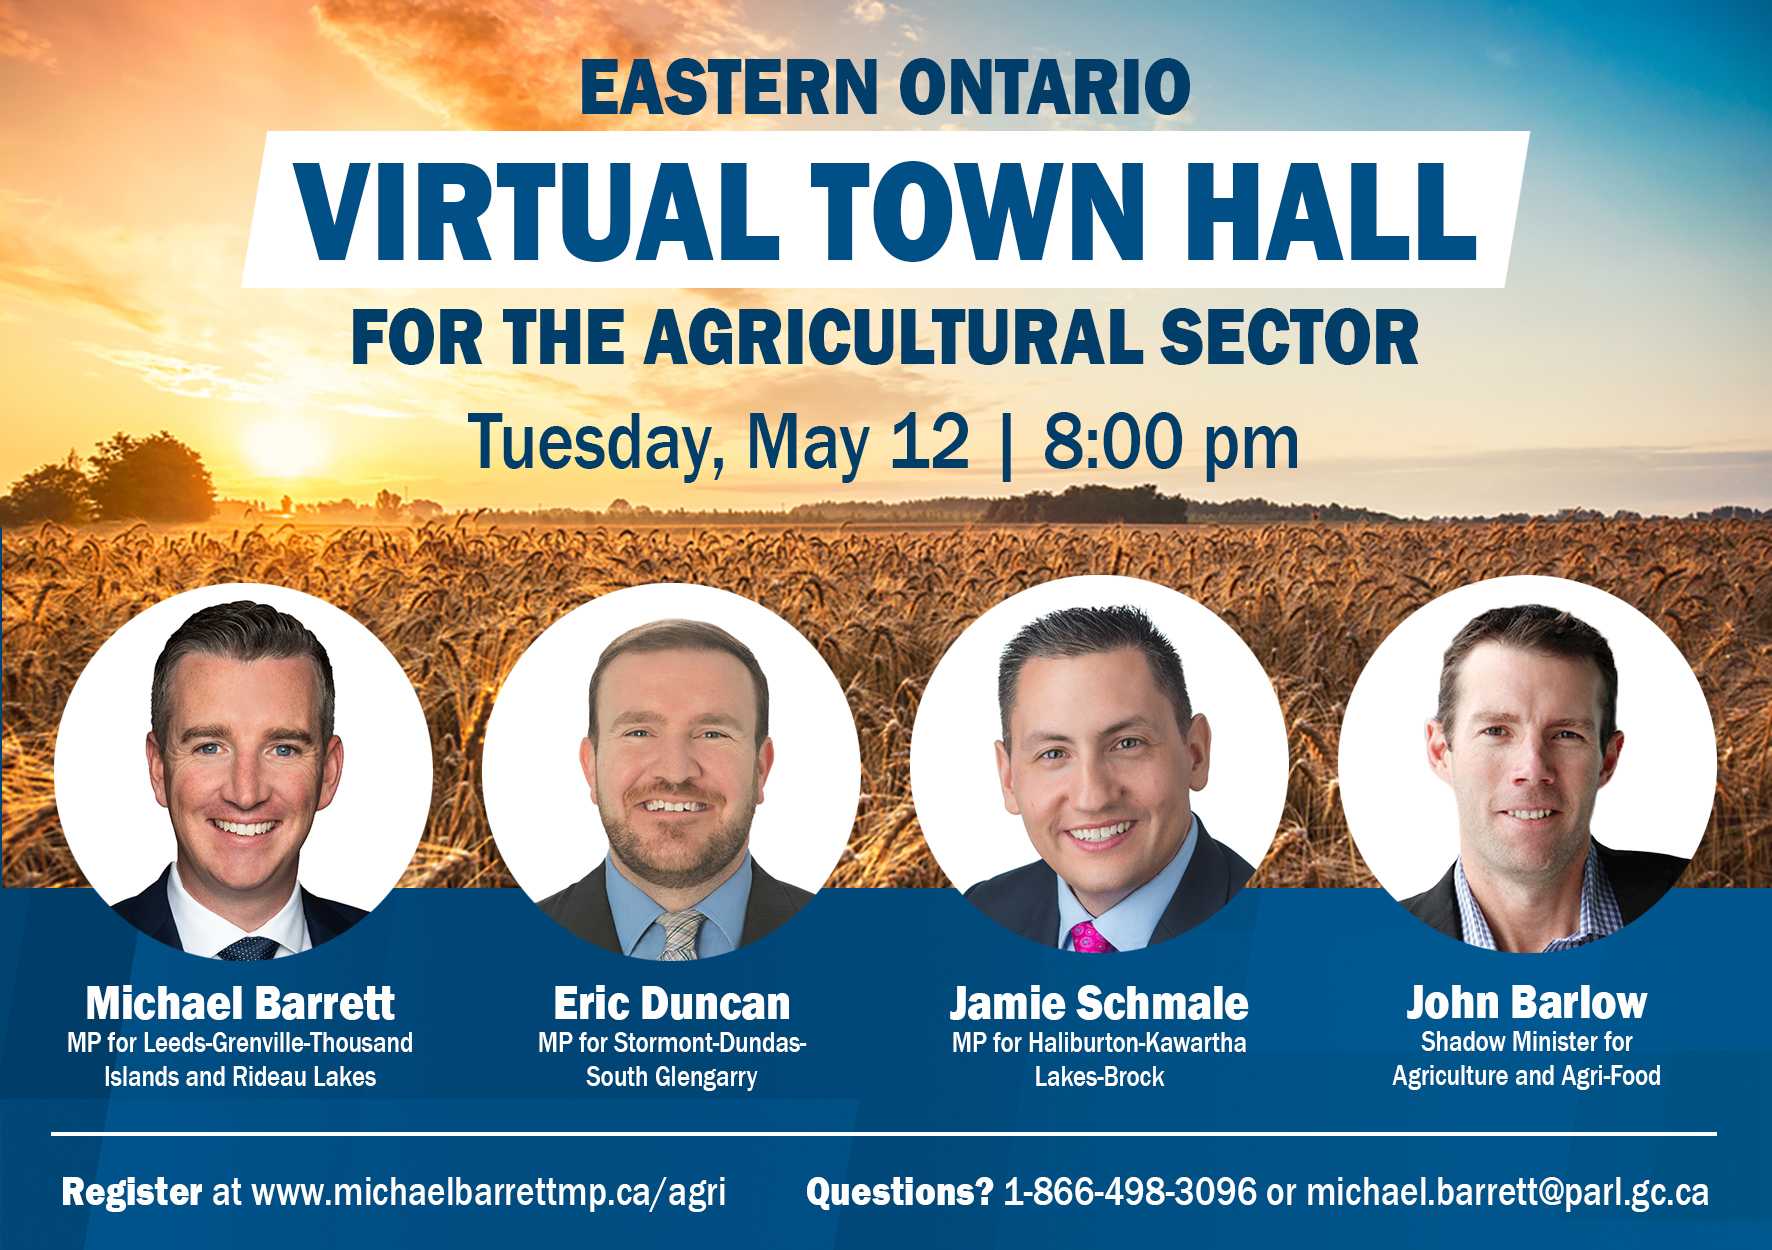 Eastern Ontario Virtual Town Hall For The Agricultural Sector